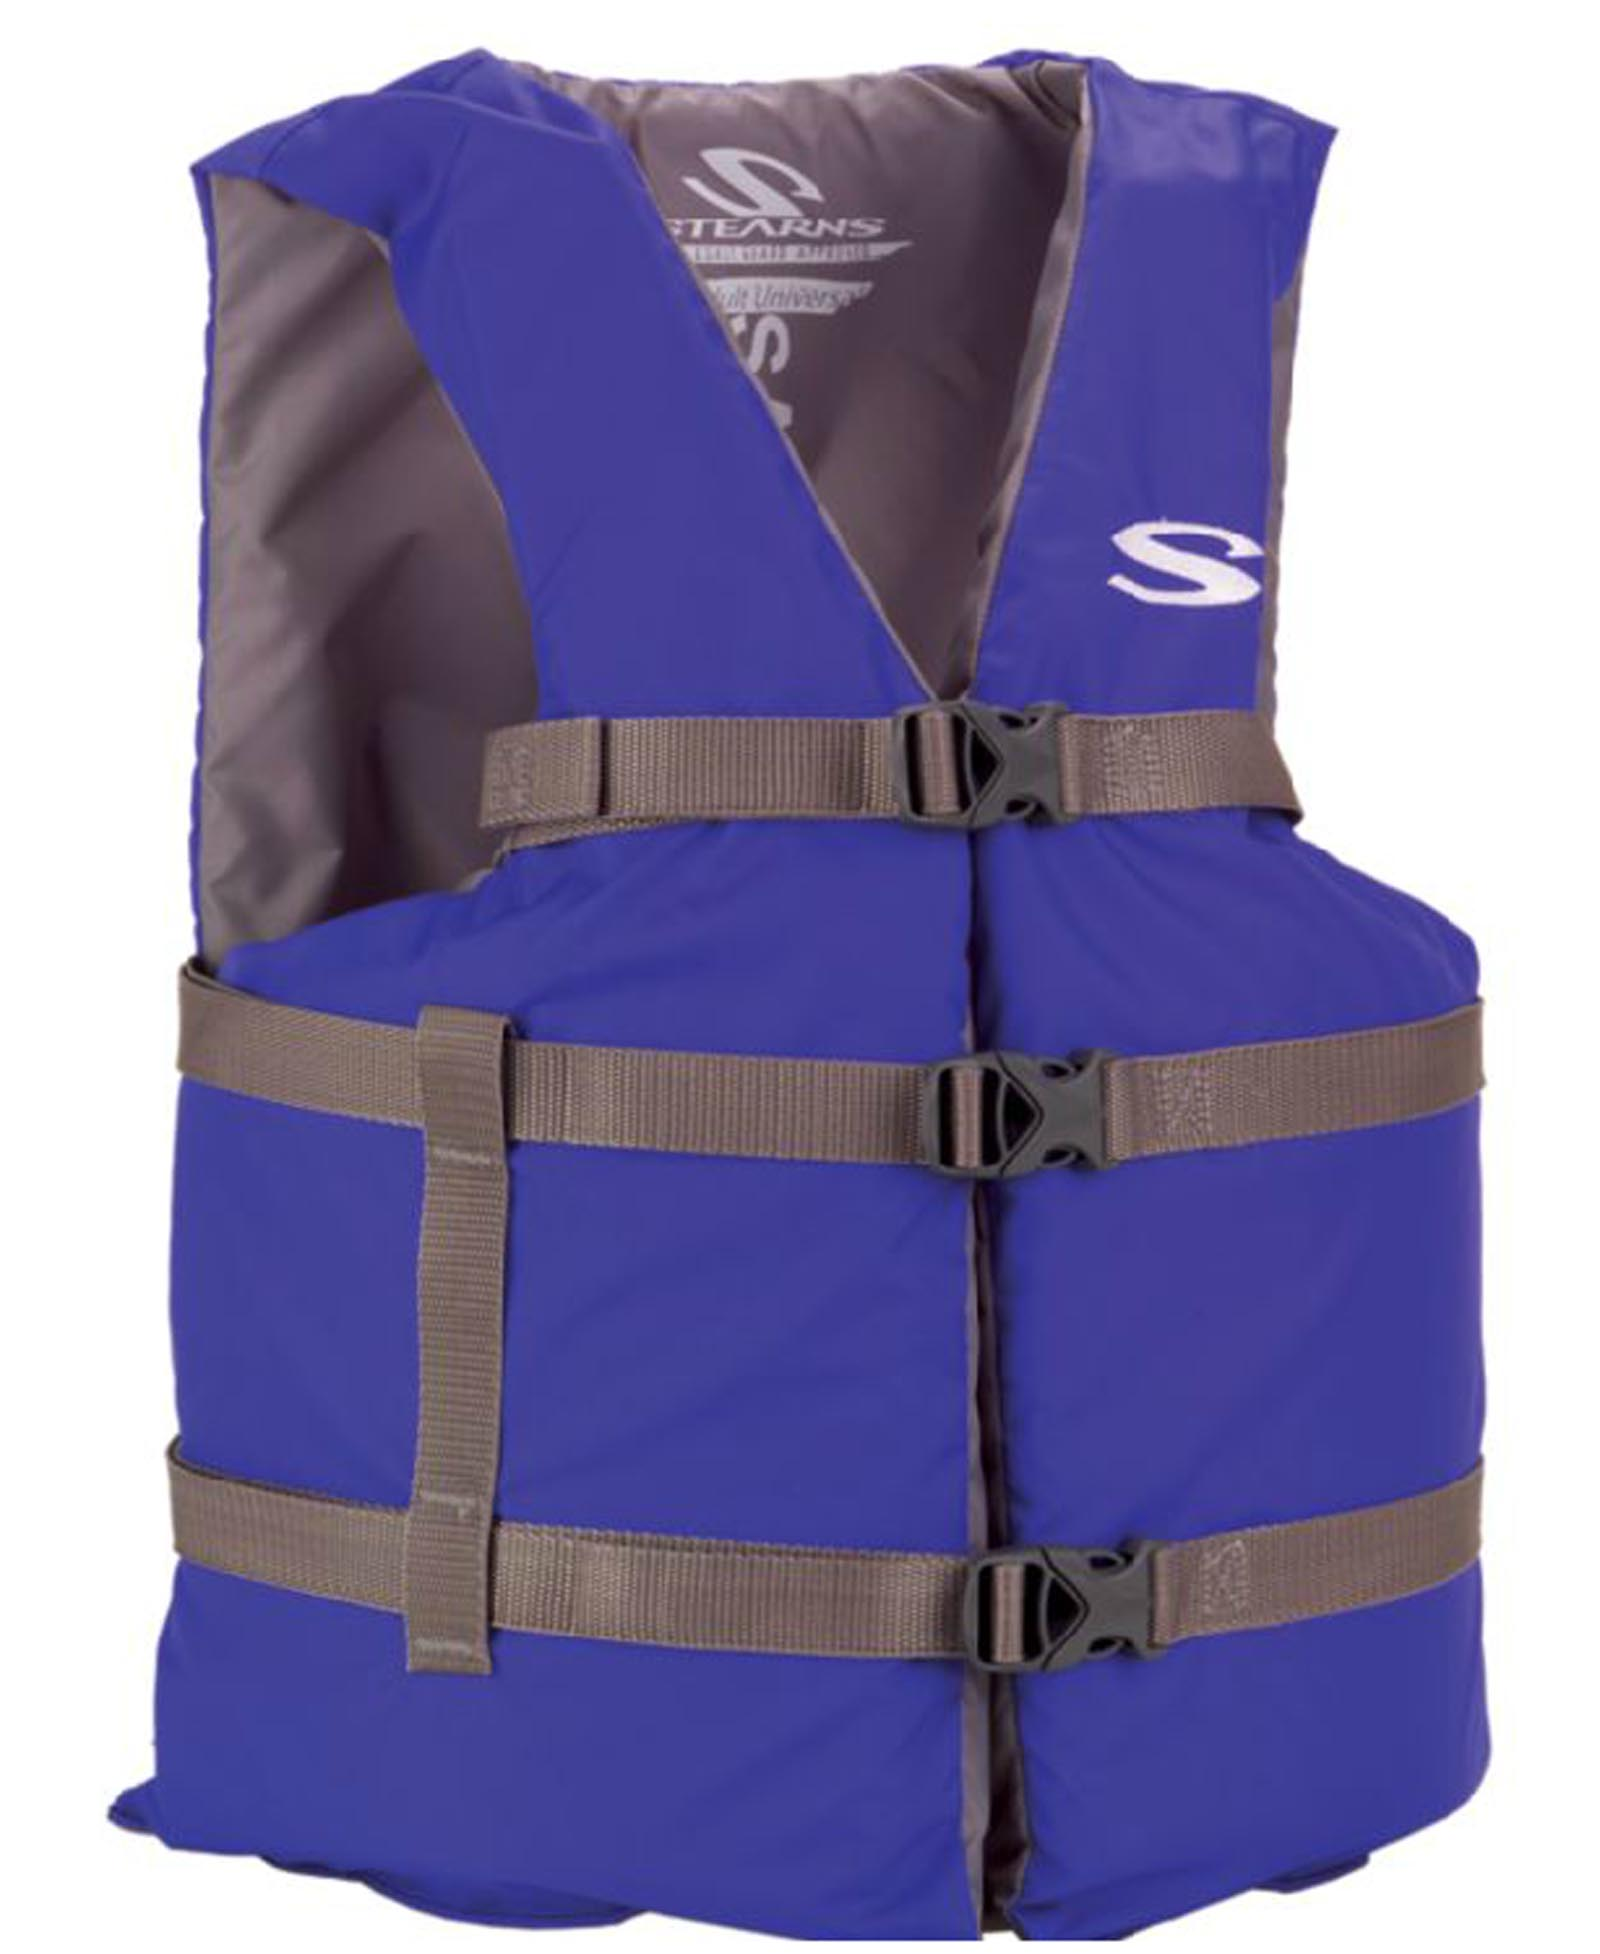 COLEMAN Stearns Adult Classic Series Universal Life Jacket Flotation Vest Blue by COLEMAN